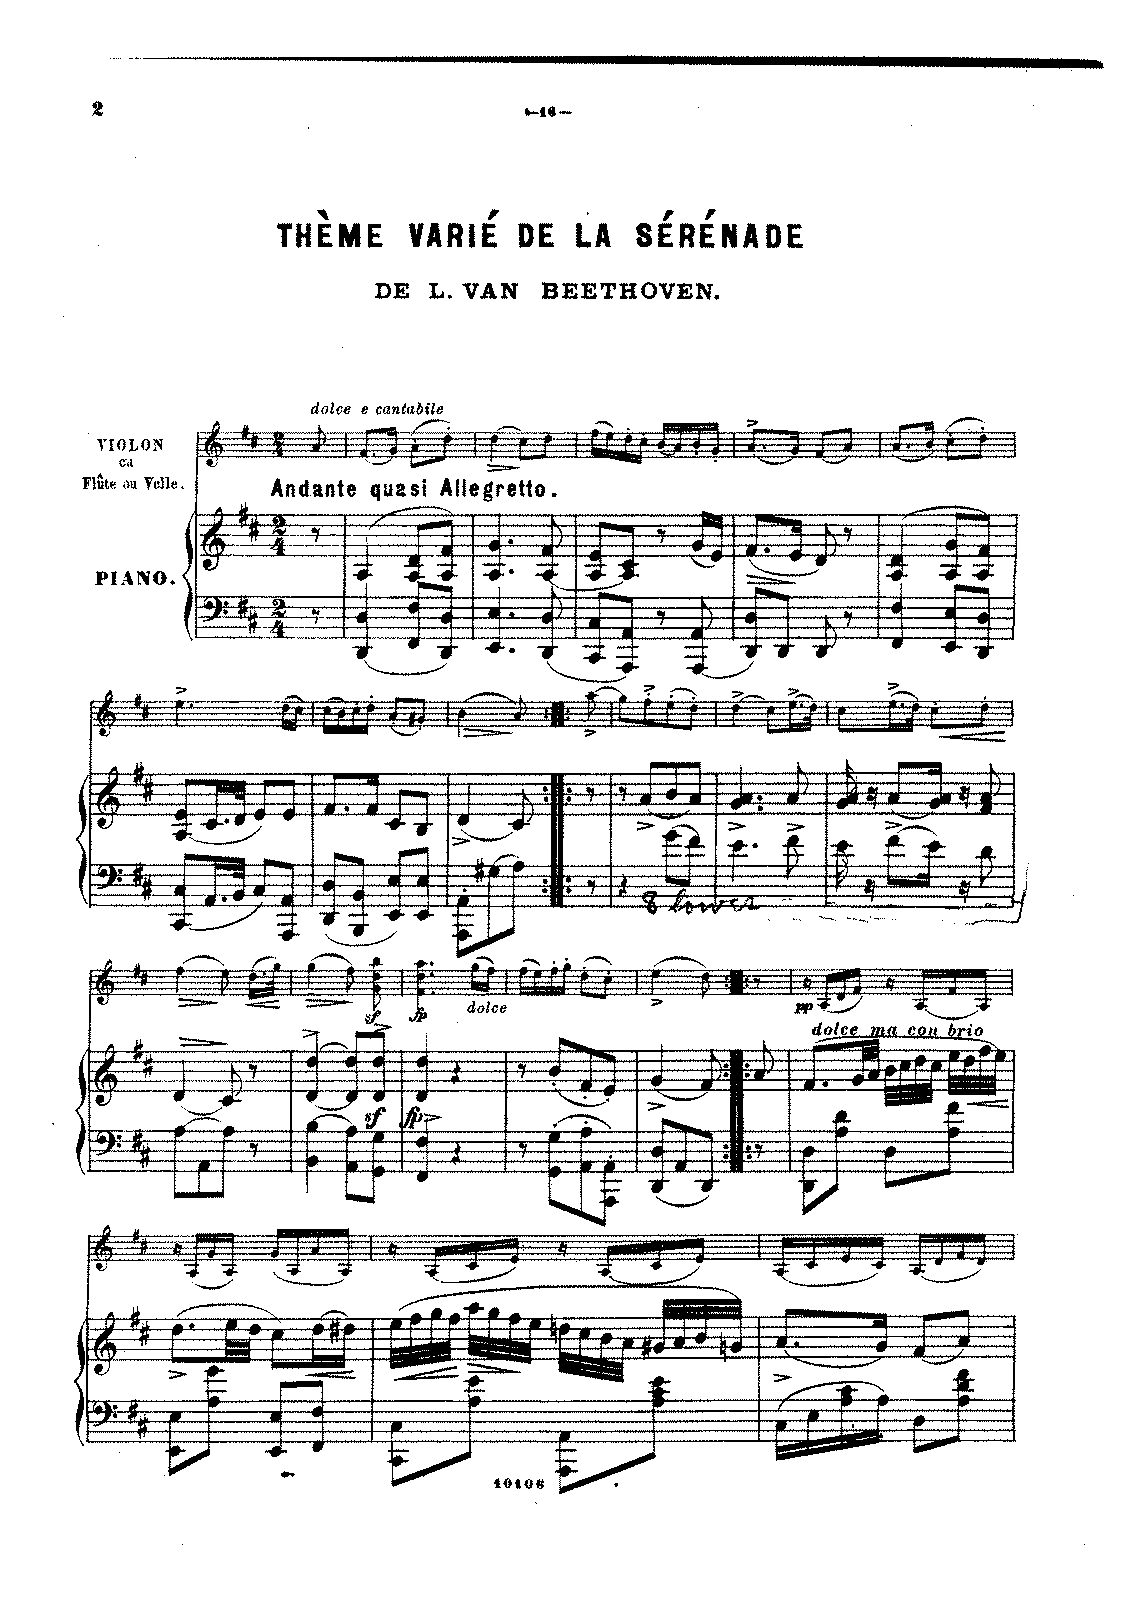 PMLP40923-Beethoven - Theme Varie de la Serenade for Cello and Piano score.pdf